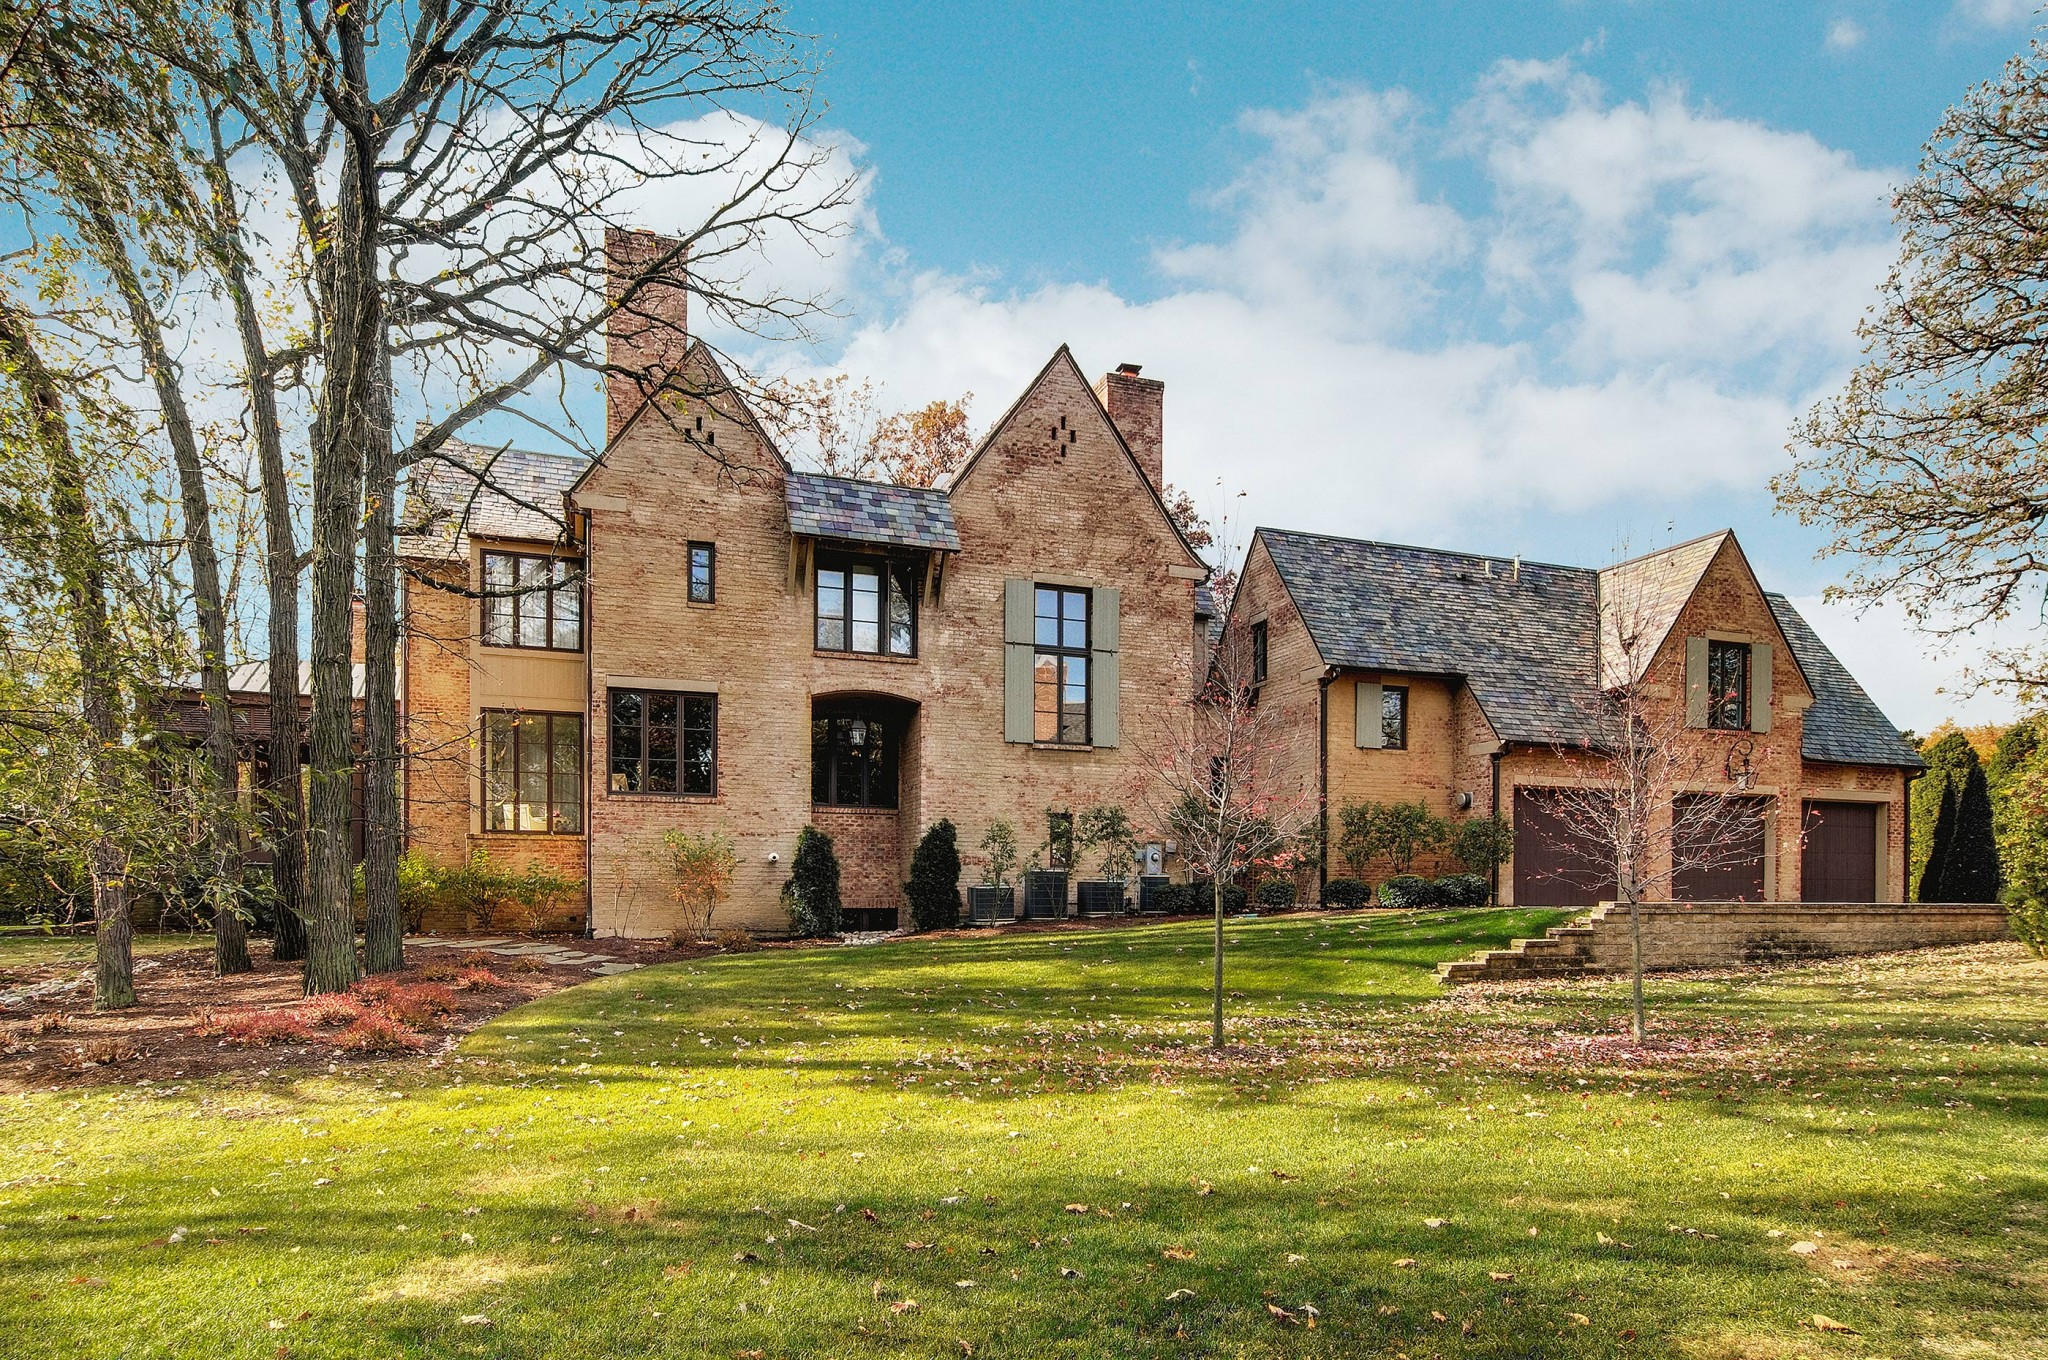 Rear exterior view of French country home